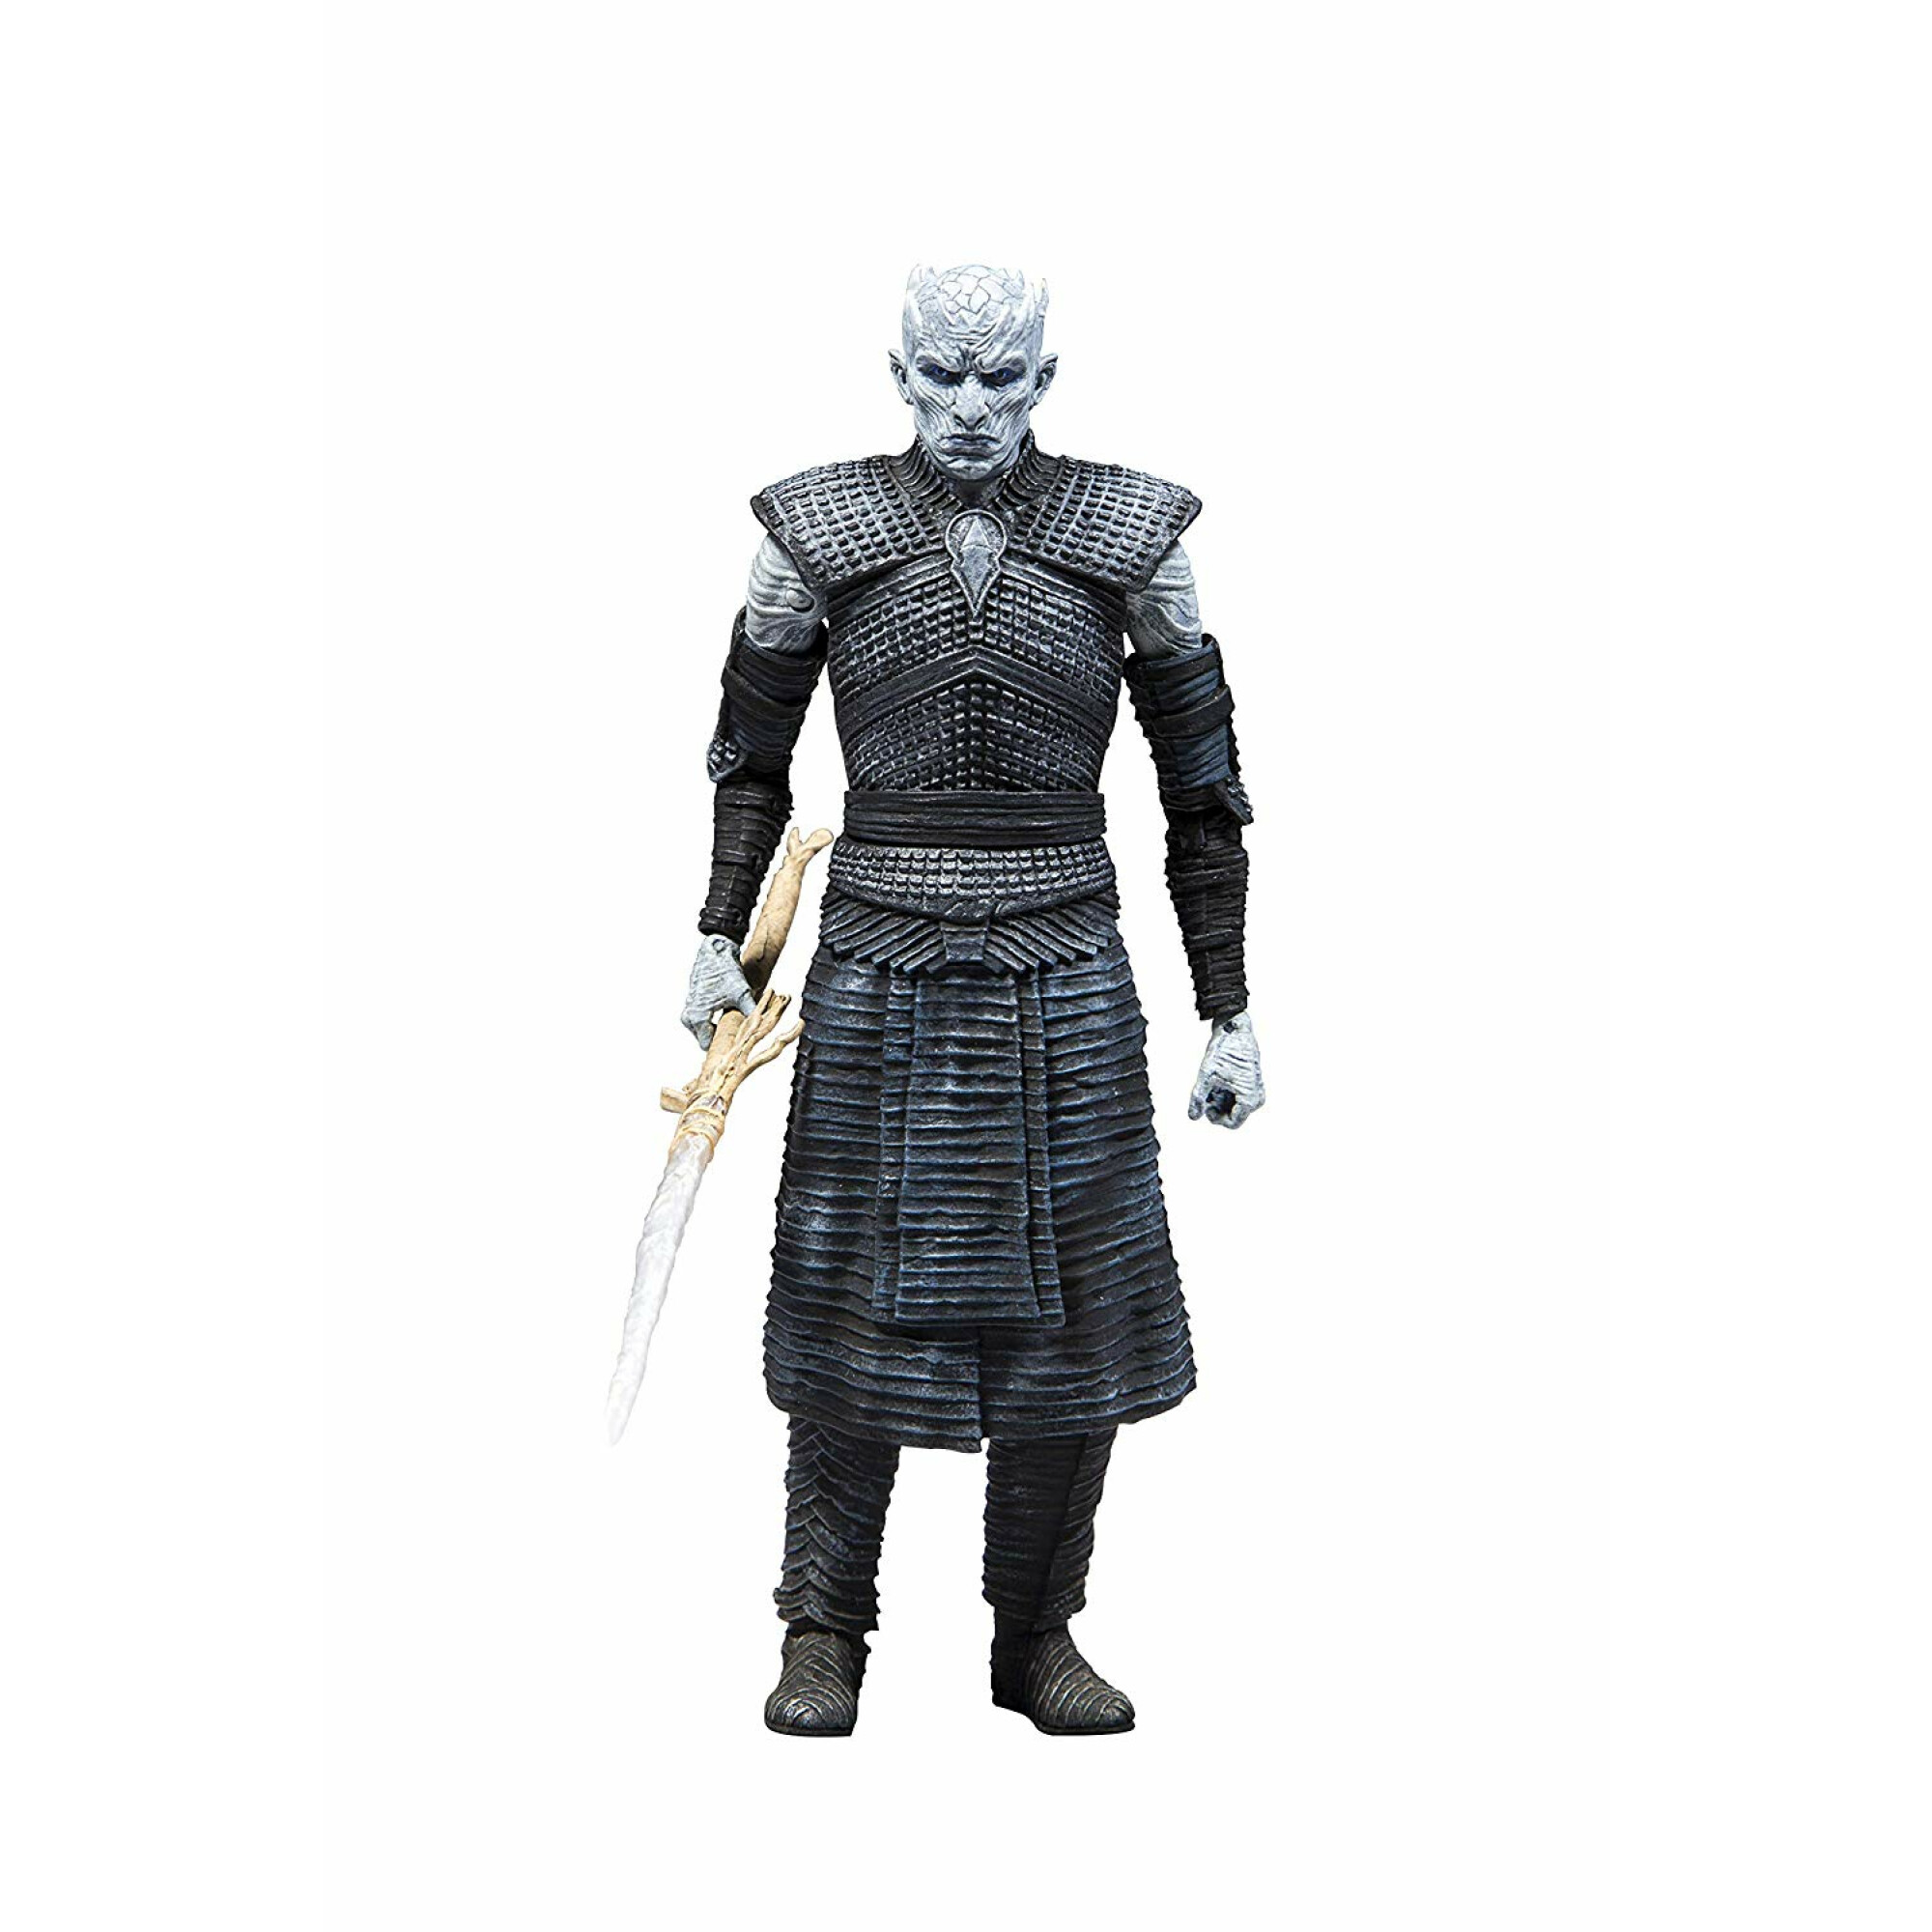 33 Night King From Game Of Thrones By Scepterdpinoy On: McFarlane Toys Game Of Thrones Night King Action Figure